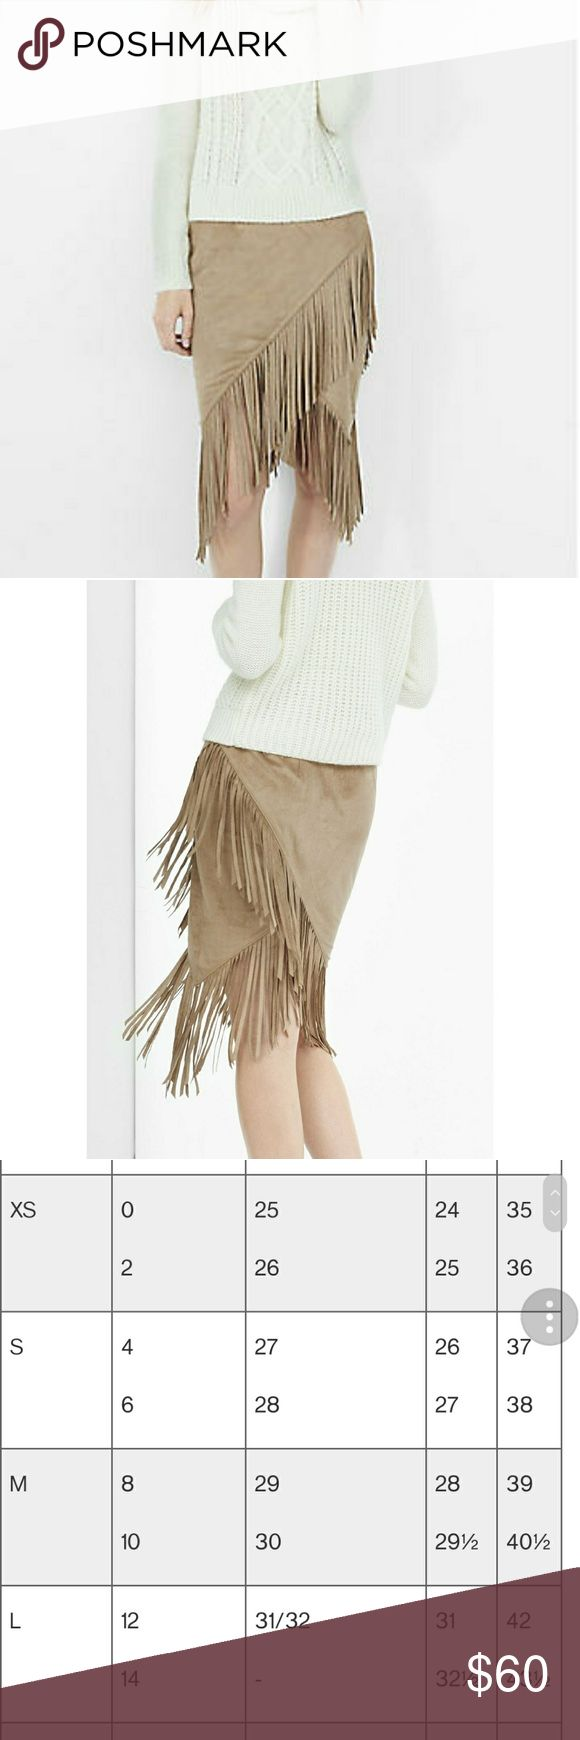 "Express Faux Suede Fringe Wrap Pencil Skirt Brand new with tags (BNWT), only worn to try on. Size 6  A supple, faux suede wrap skirt with ample, eight-inch fringe that swishes when you walk. Keep it simple and sexy with a shape-skimming ribbed sweater or go for a fully Southwestern vibe with a cami and denim jacket.  High waisted Hidden hook and zipper on side 8"" fringe embellishment Wrap hem; LinedPolyester/Spandex body; Polyester lining Machine wash Express Skirts"